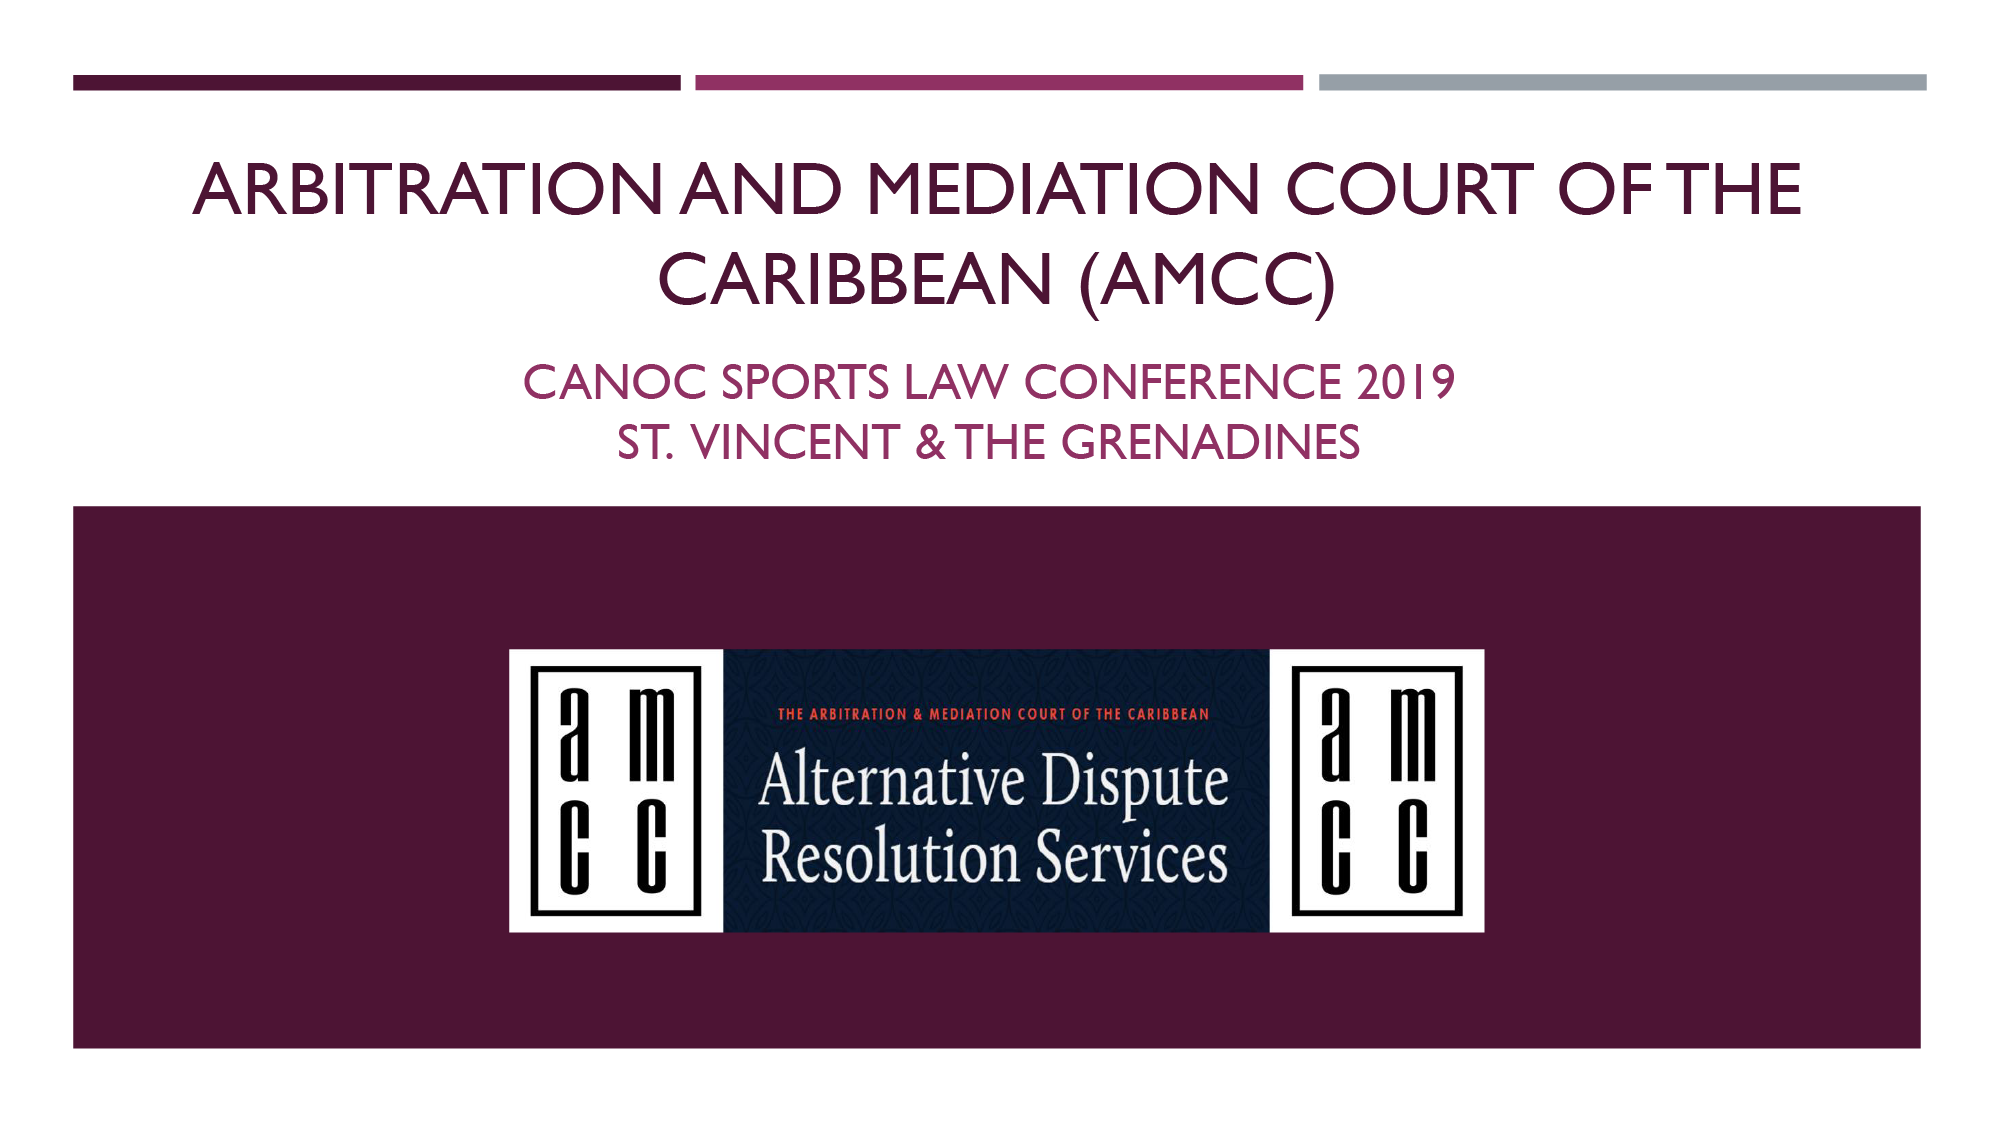 ARBITRATION AND MEDIATION COURT OF THE CARIBBEAN PPT